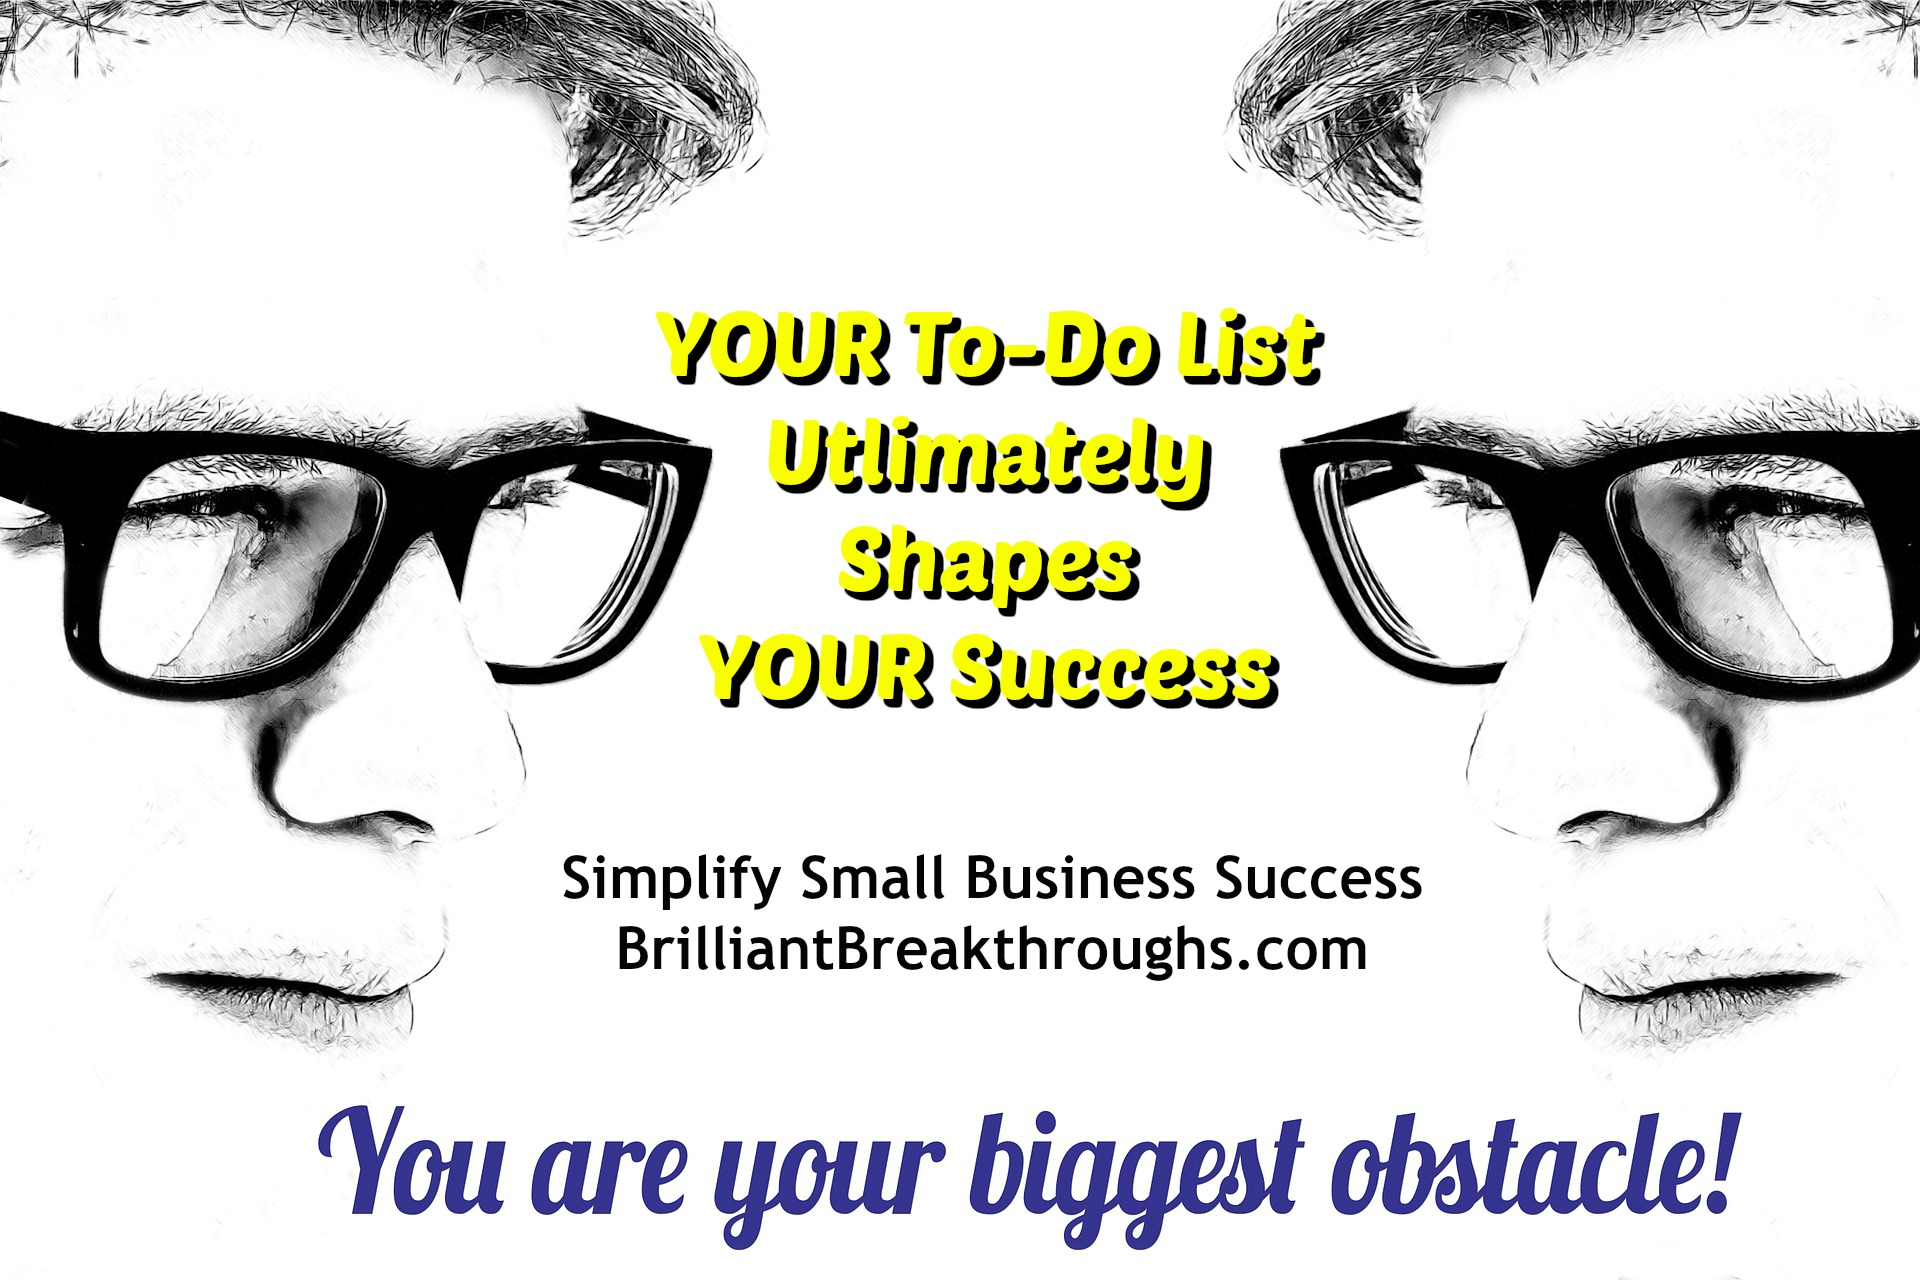 Your To-Do list ultimately shapes your success - Brilliant